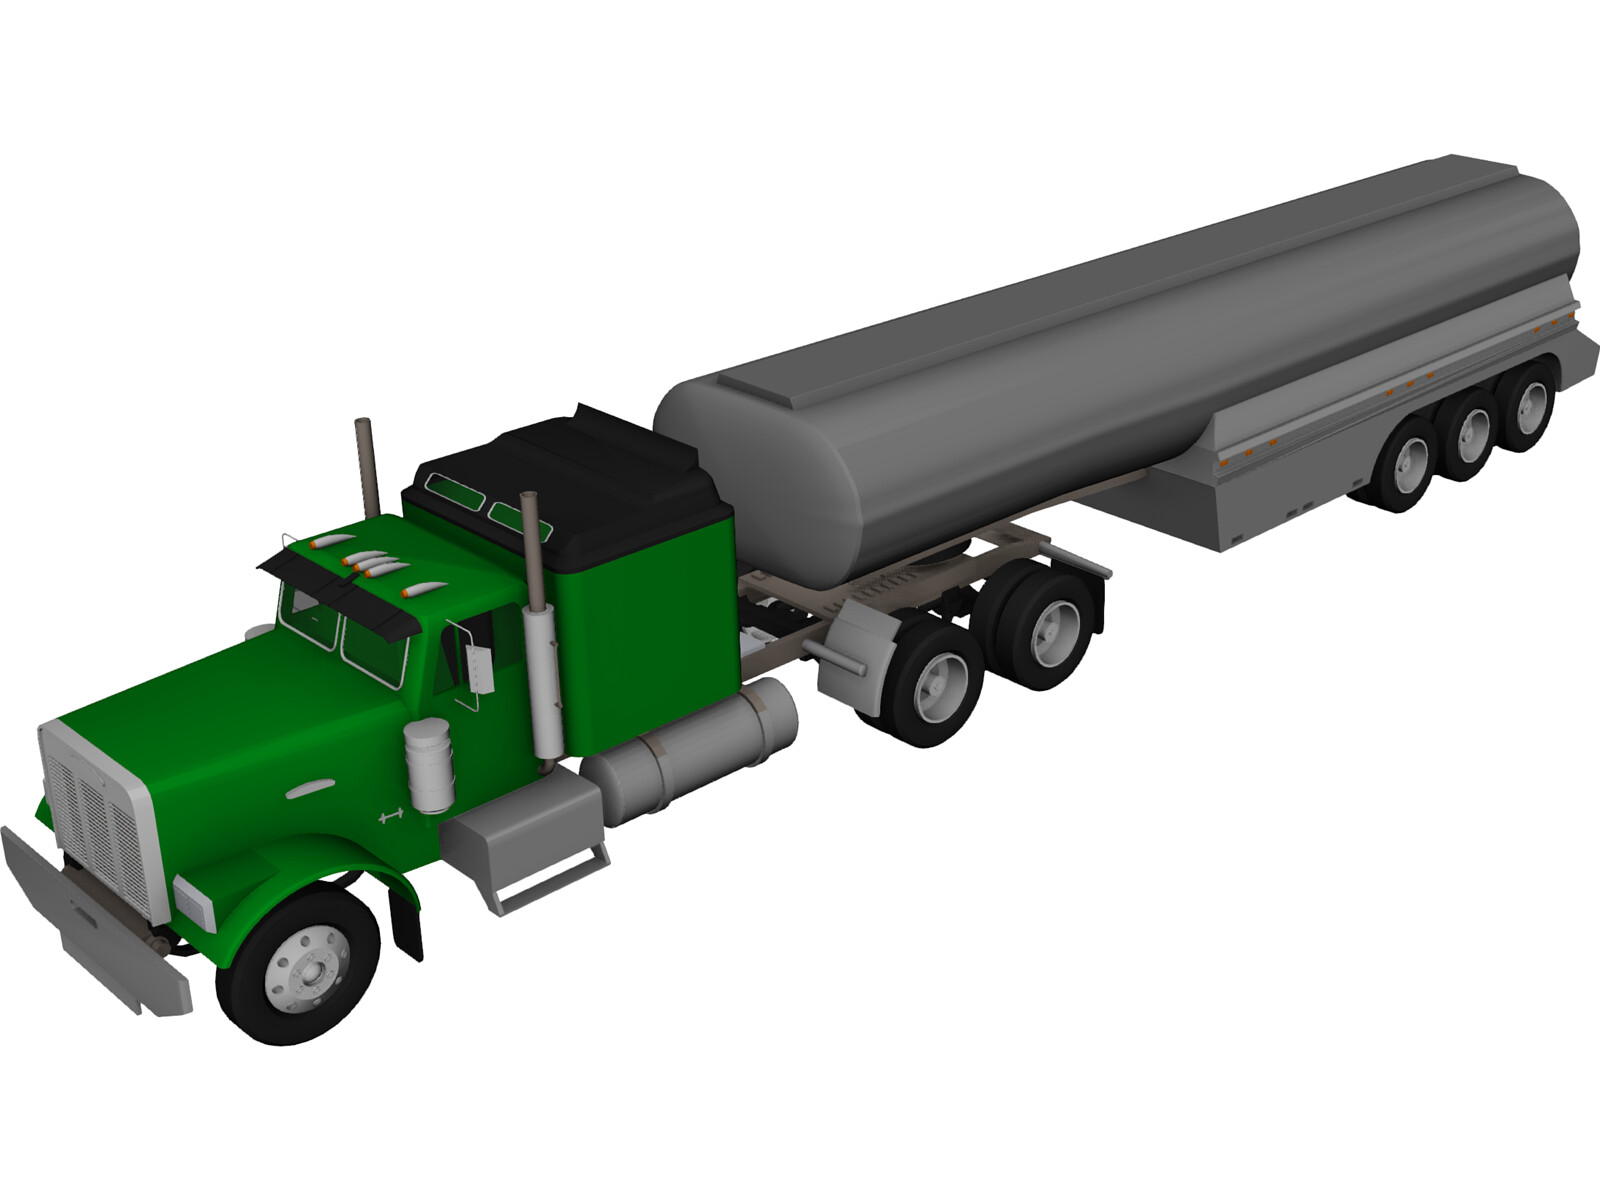 Ford Semi Truck with Tanker Trailer 3D Model